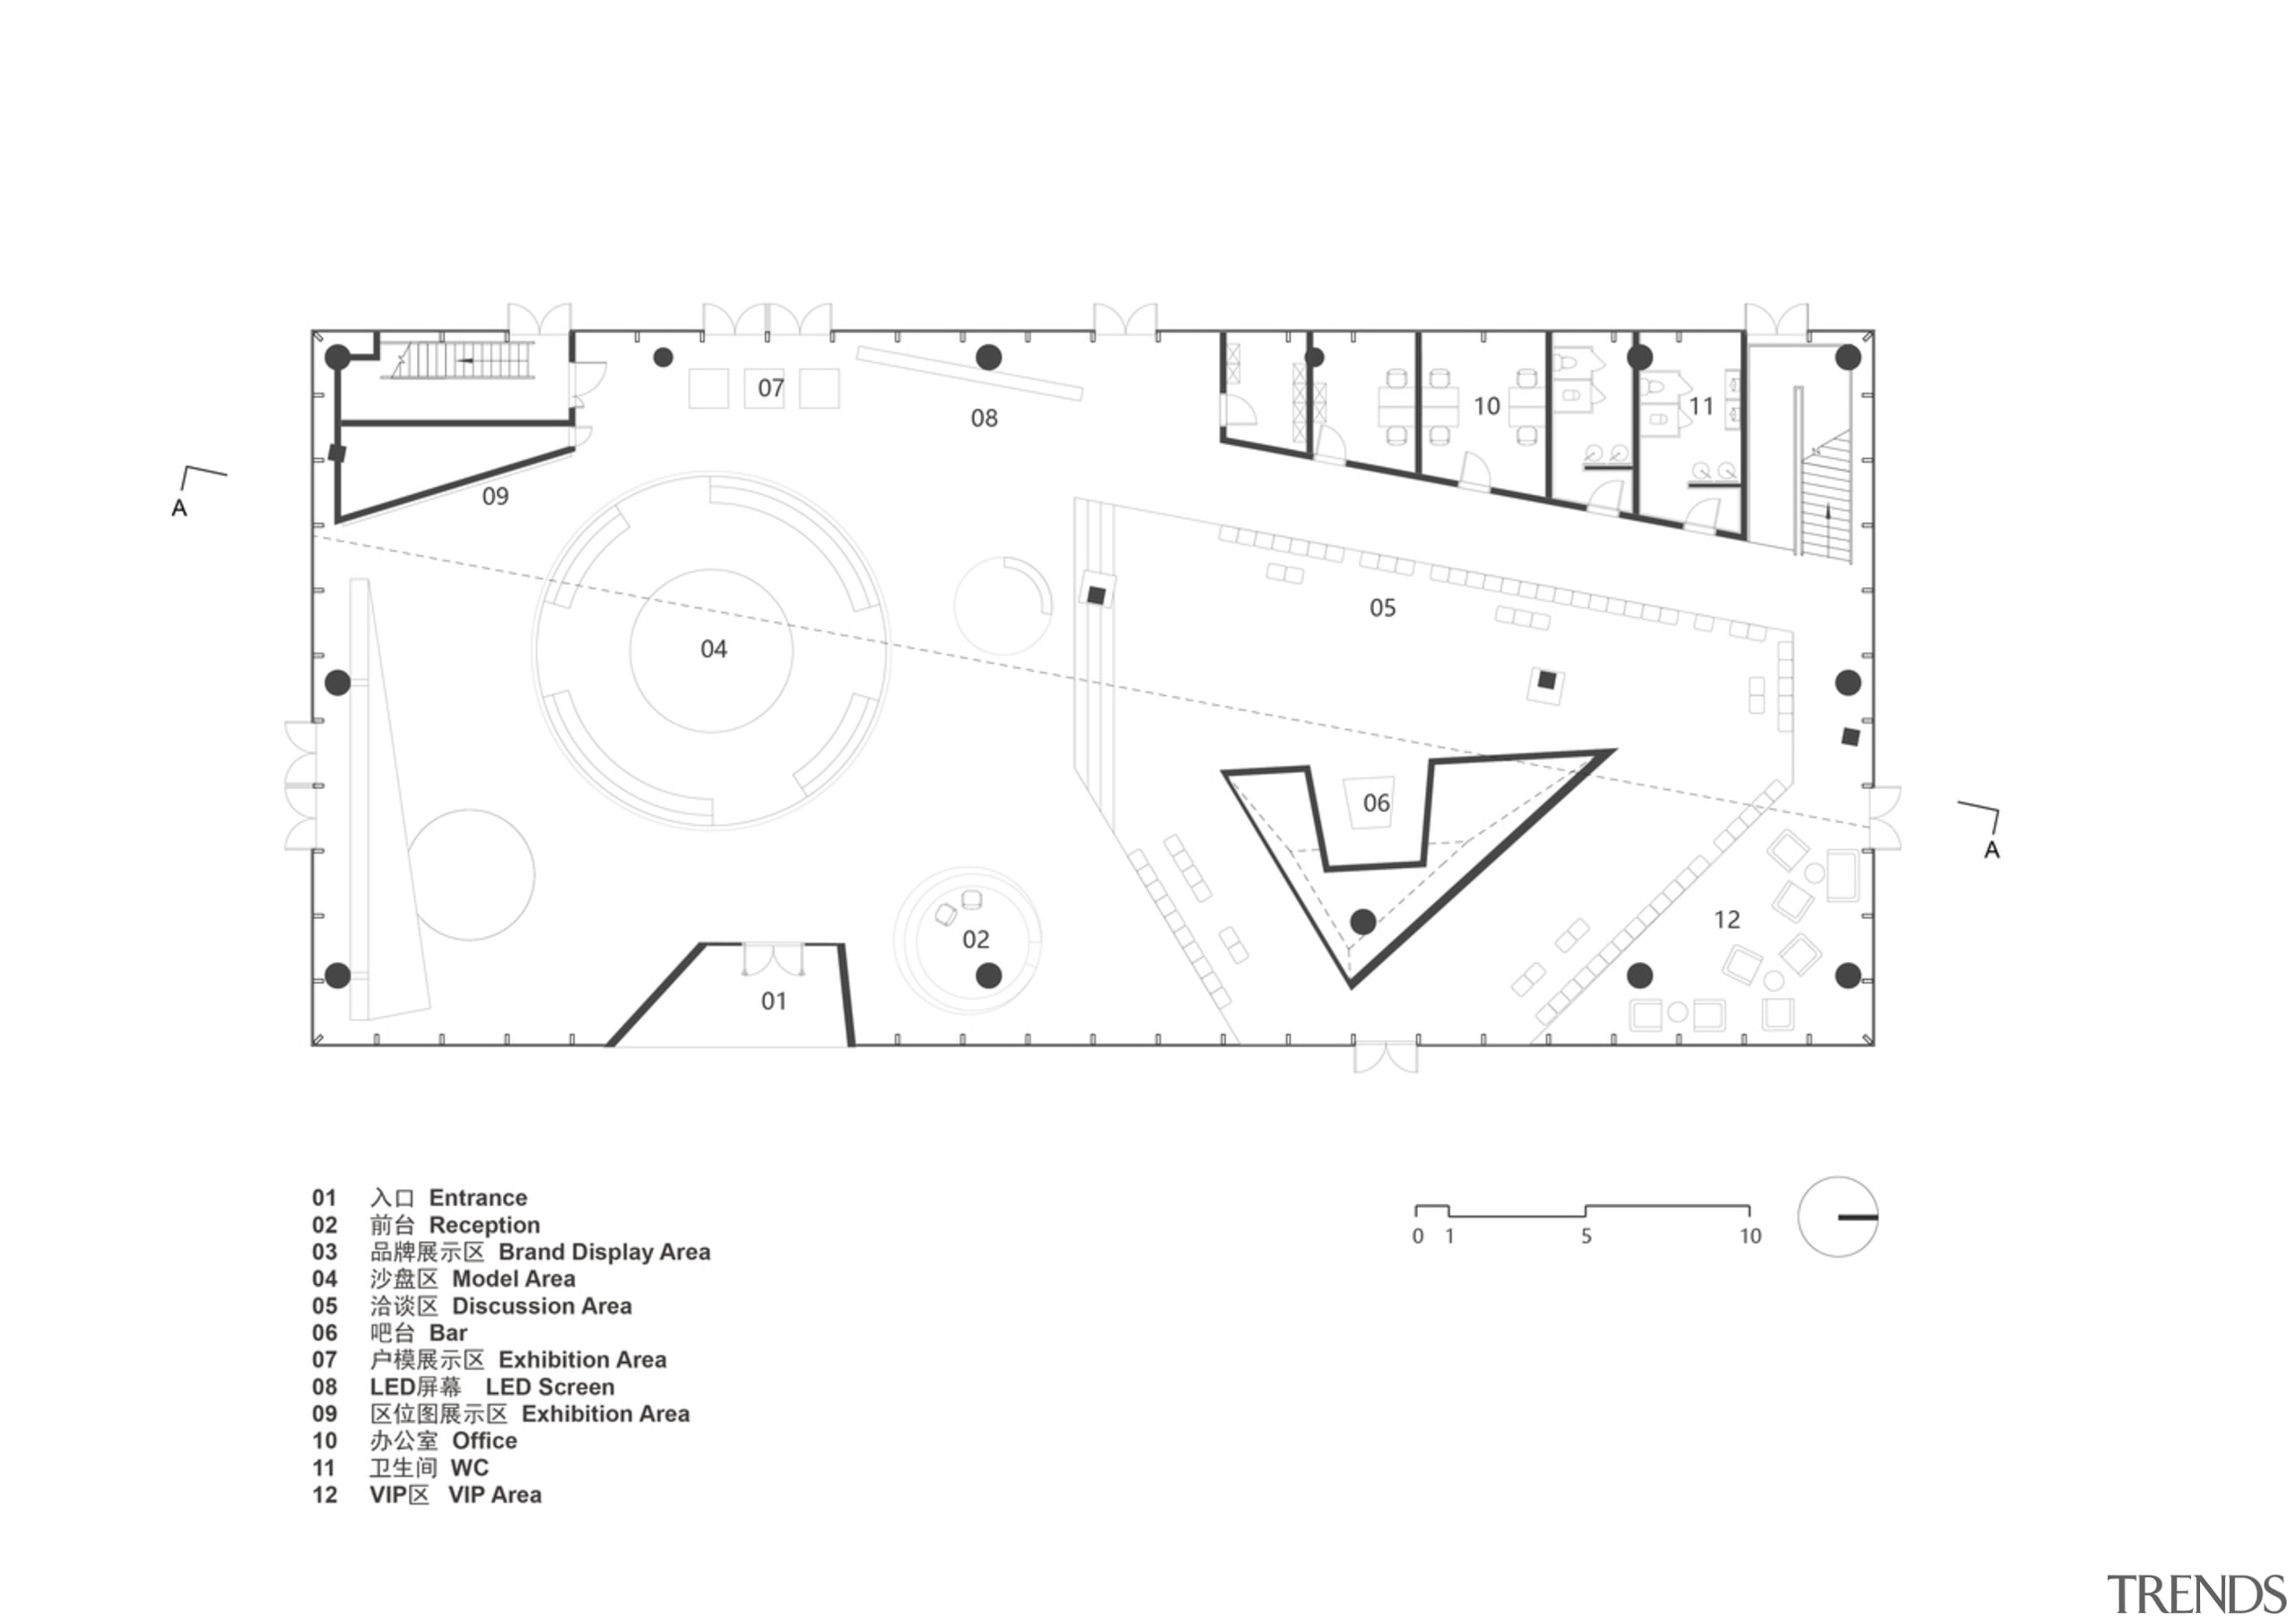 GF Layout Plan 首层平面 - design | diagram design, diagram, drawing, floor plan, font, line, parallel, rectangle, technical drawing, text, white